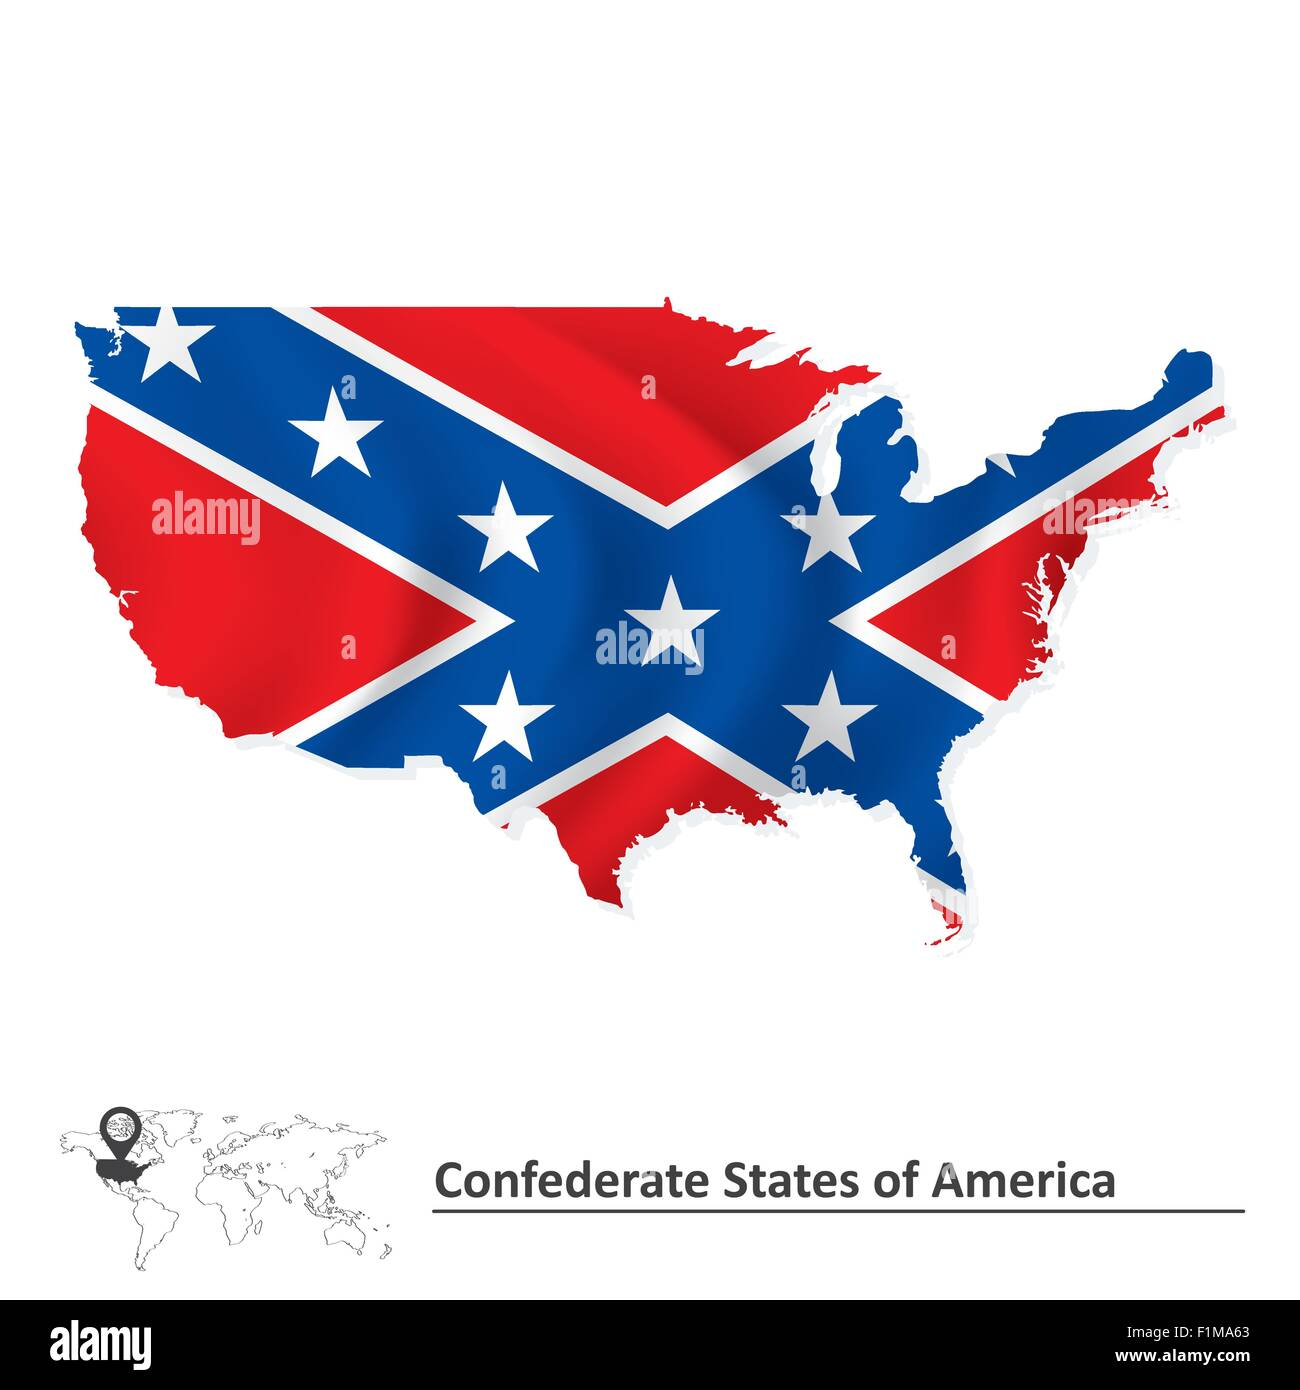 Confederate States Map Stock Photos & Confederate States Map Stock ...